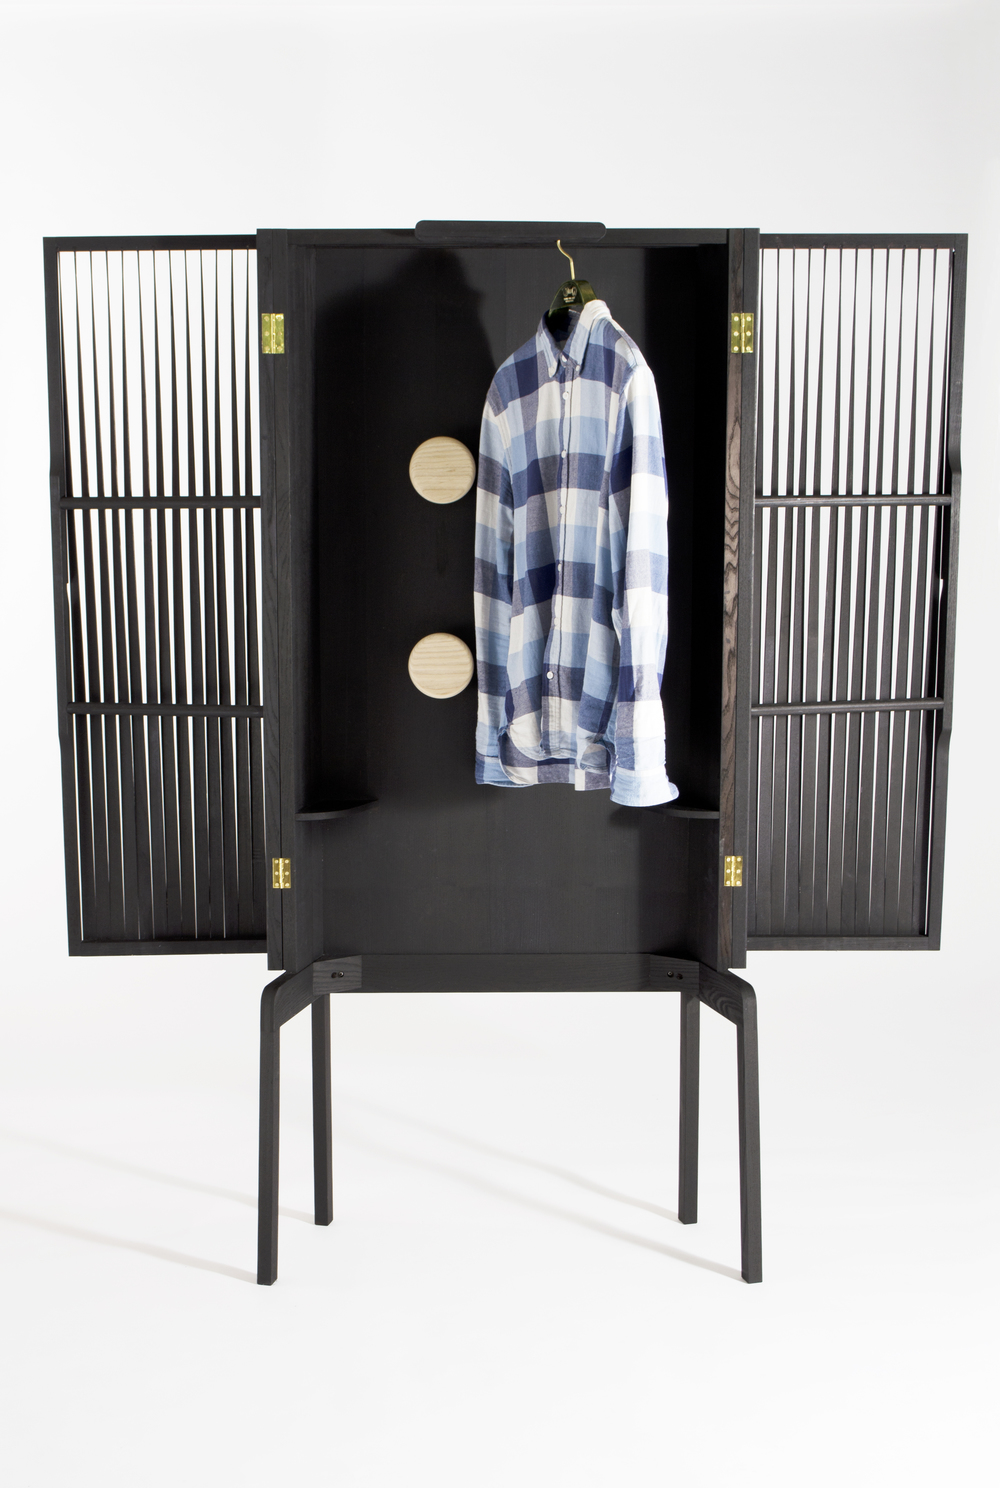 Cabinet by Charlie Styrbjörn Nilsson in collaboration with Olle K Engberg and Ludwig Berg (7).jpg